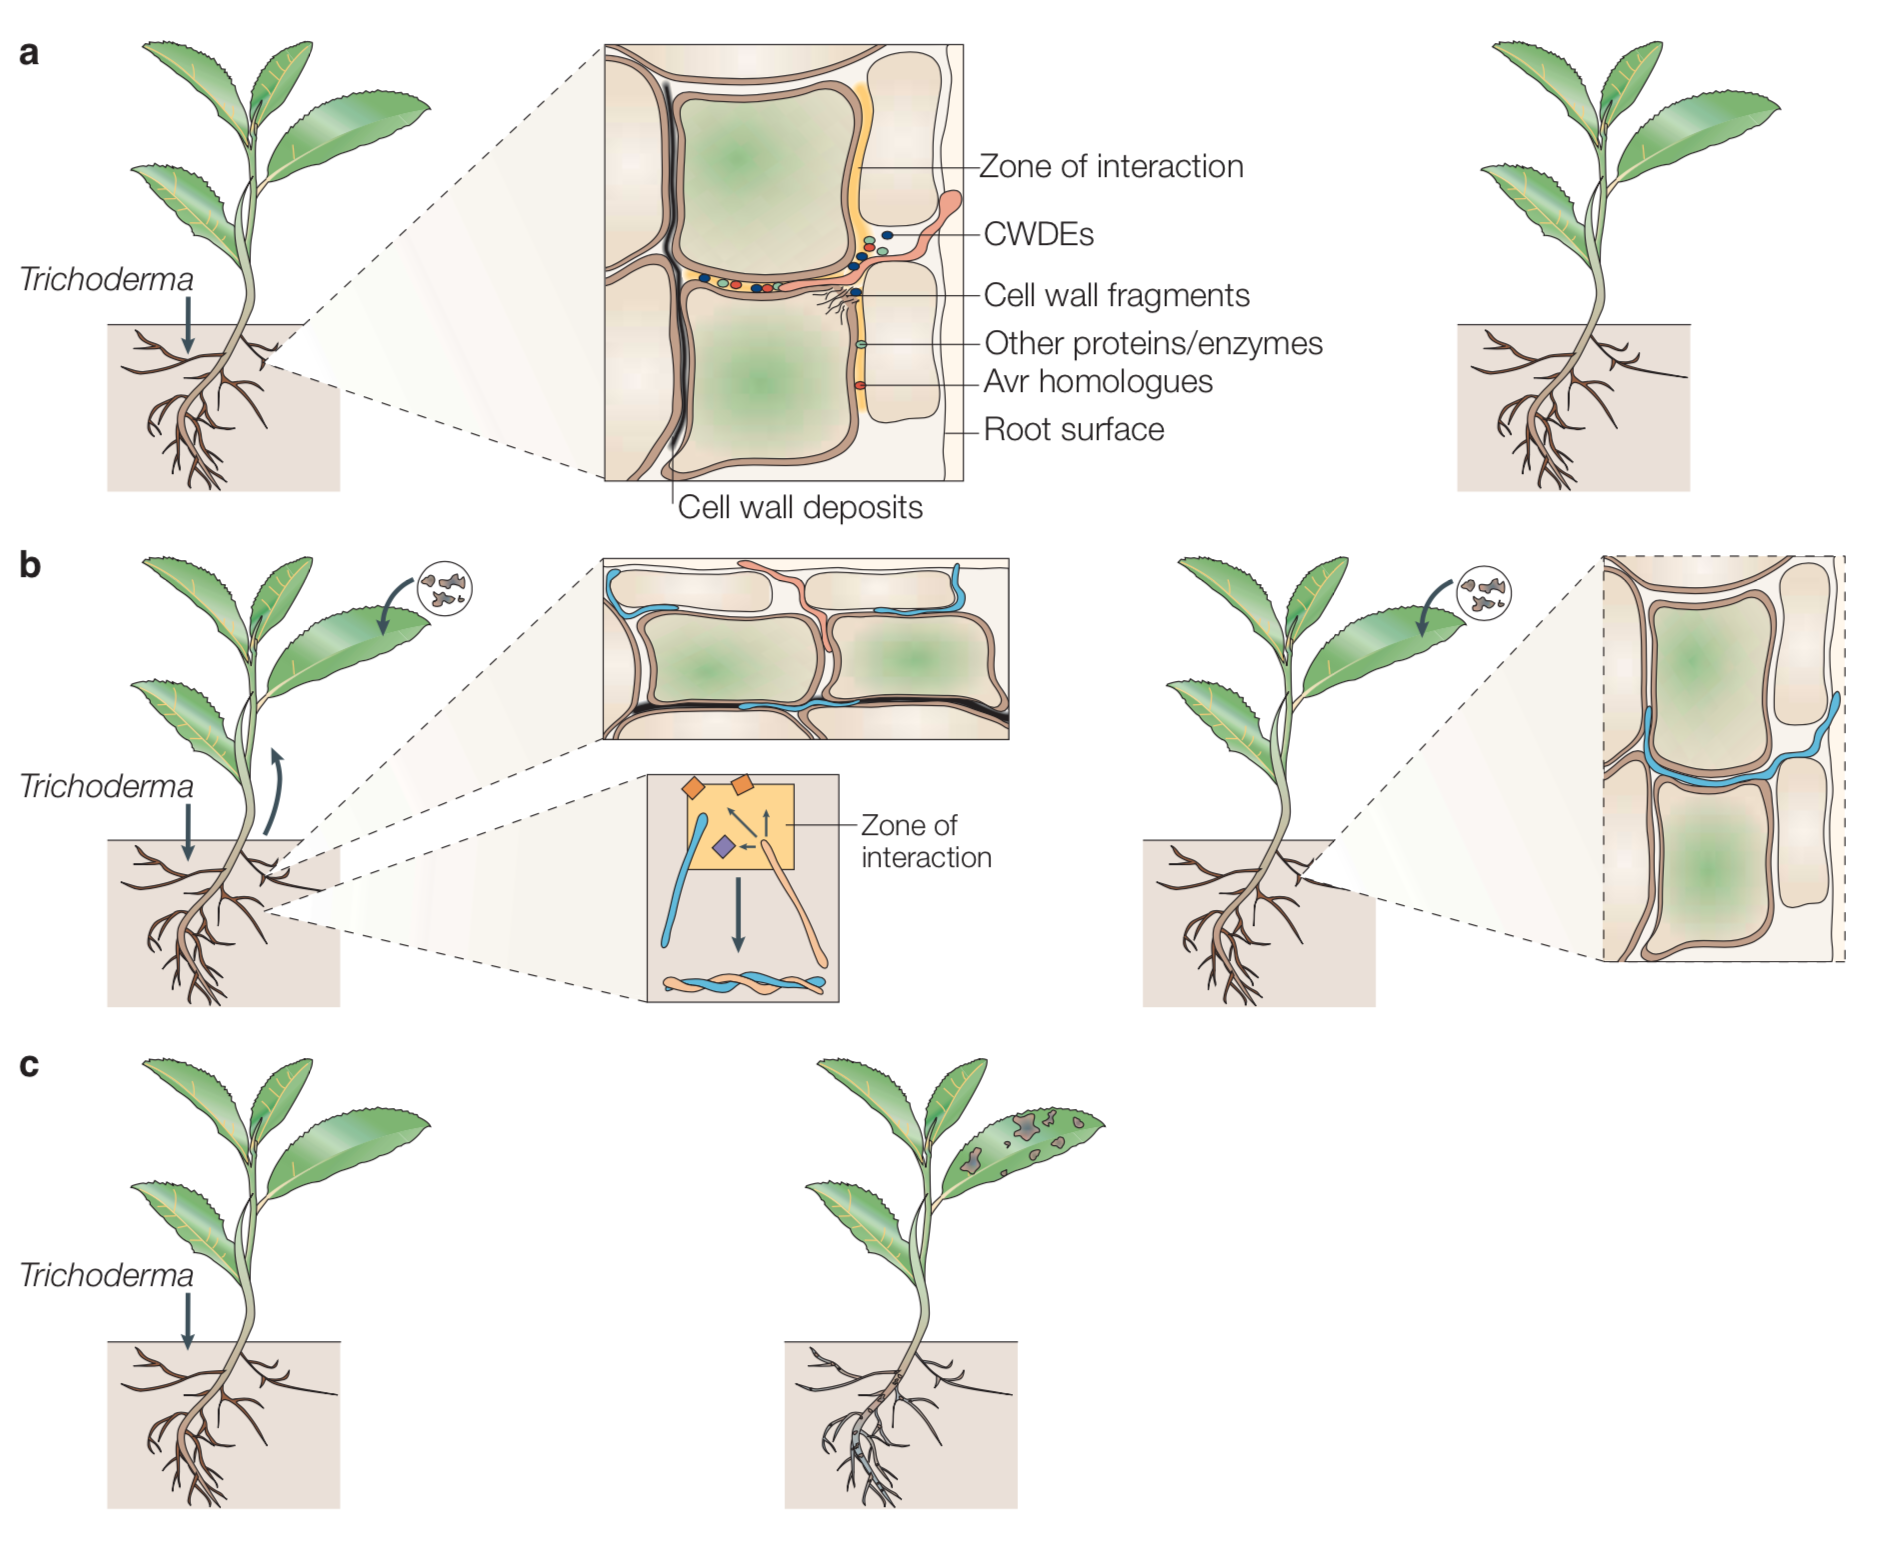 Orange filaments in a.) and b.) represent  Trichoderma  sp. within plant roots. Blue filaments represent fungal pathogens. When invaded by  Trichoderma  sp. the plant responds by creating cell-wall deposits (black squiggles) which limits  Trichoderma  and pathogen growth. The first plant in panel c.) represents a healthy, disease resistant plant with  Trichoderma  sp. present while the second individual represents a disease ridden, less fit plant without the fungal mutualist. Harman et al. 2004 .